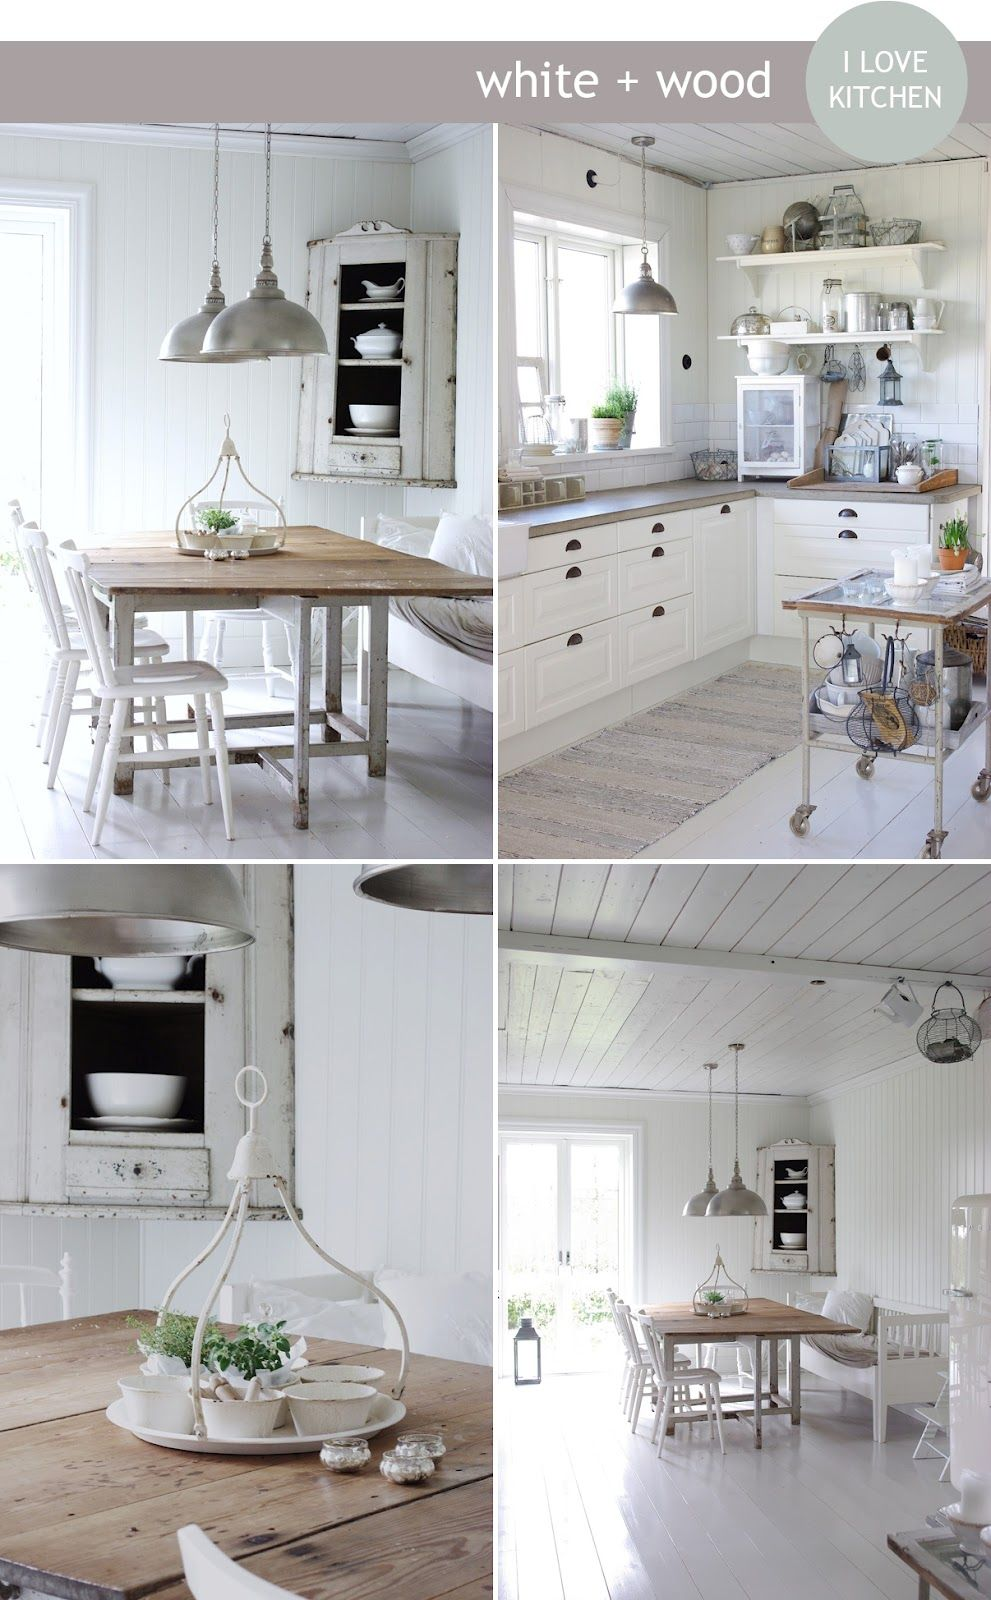 shabby chic interiors stile nordico semplice e originale